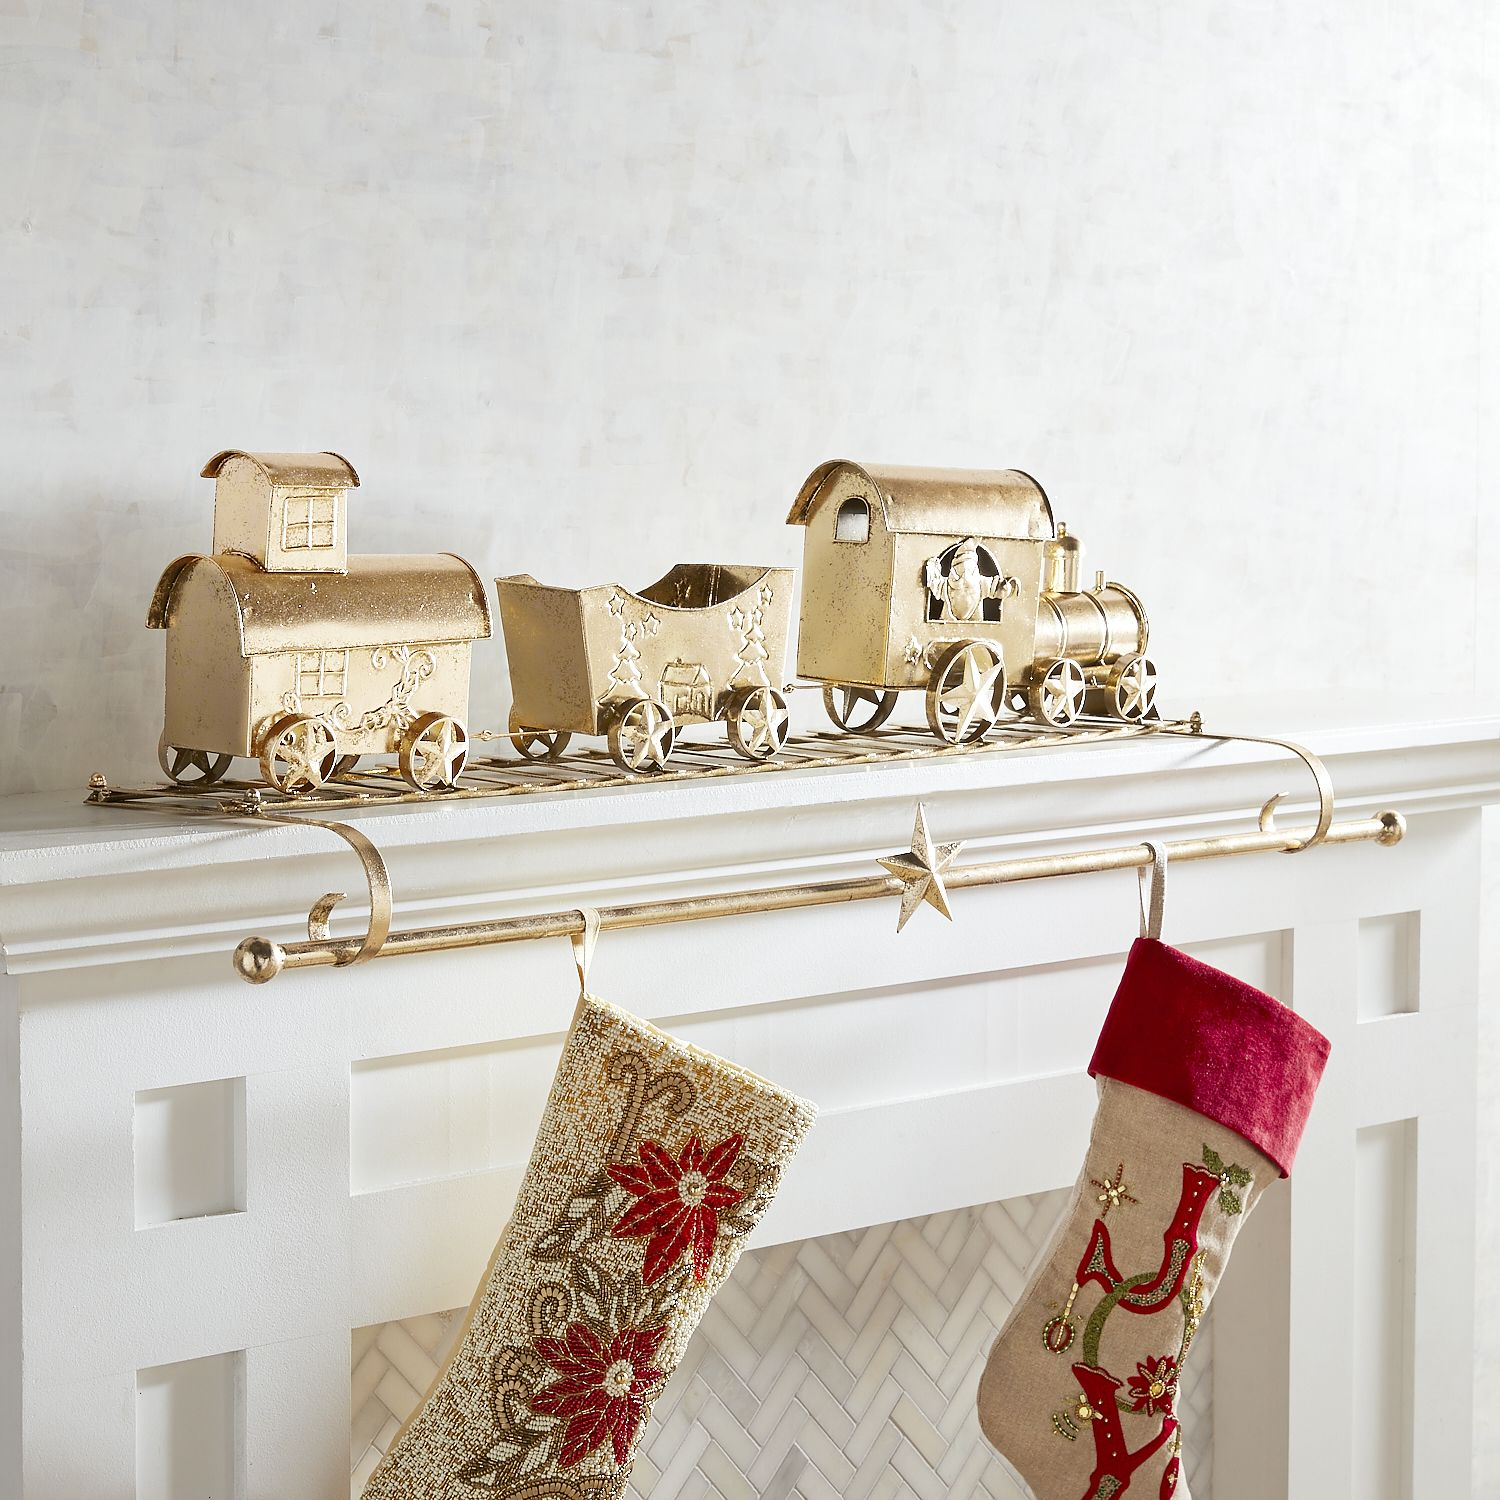 31 Best Christmas Stocking Holders - Stylish Christmas Decorations For  Stockings